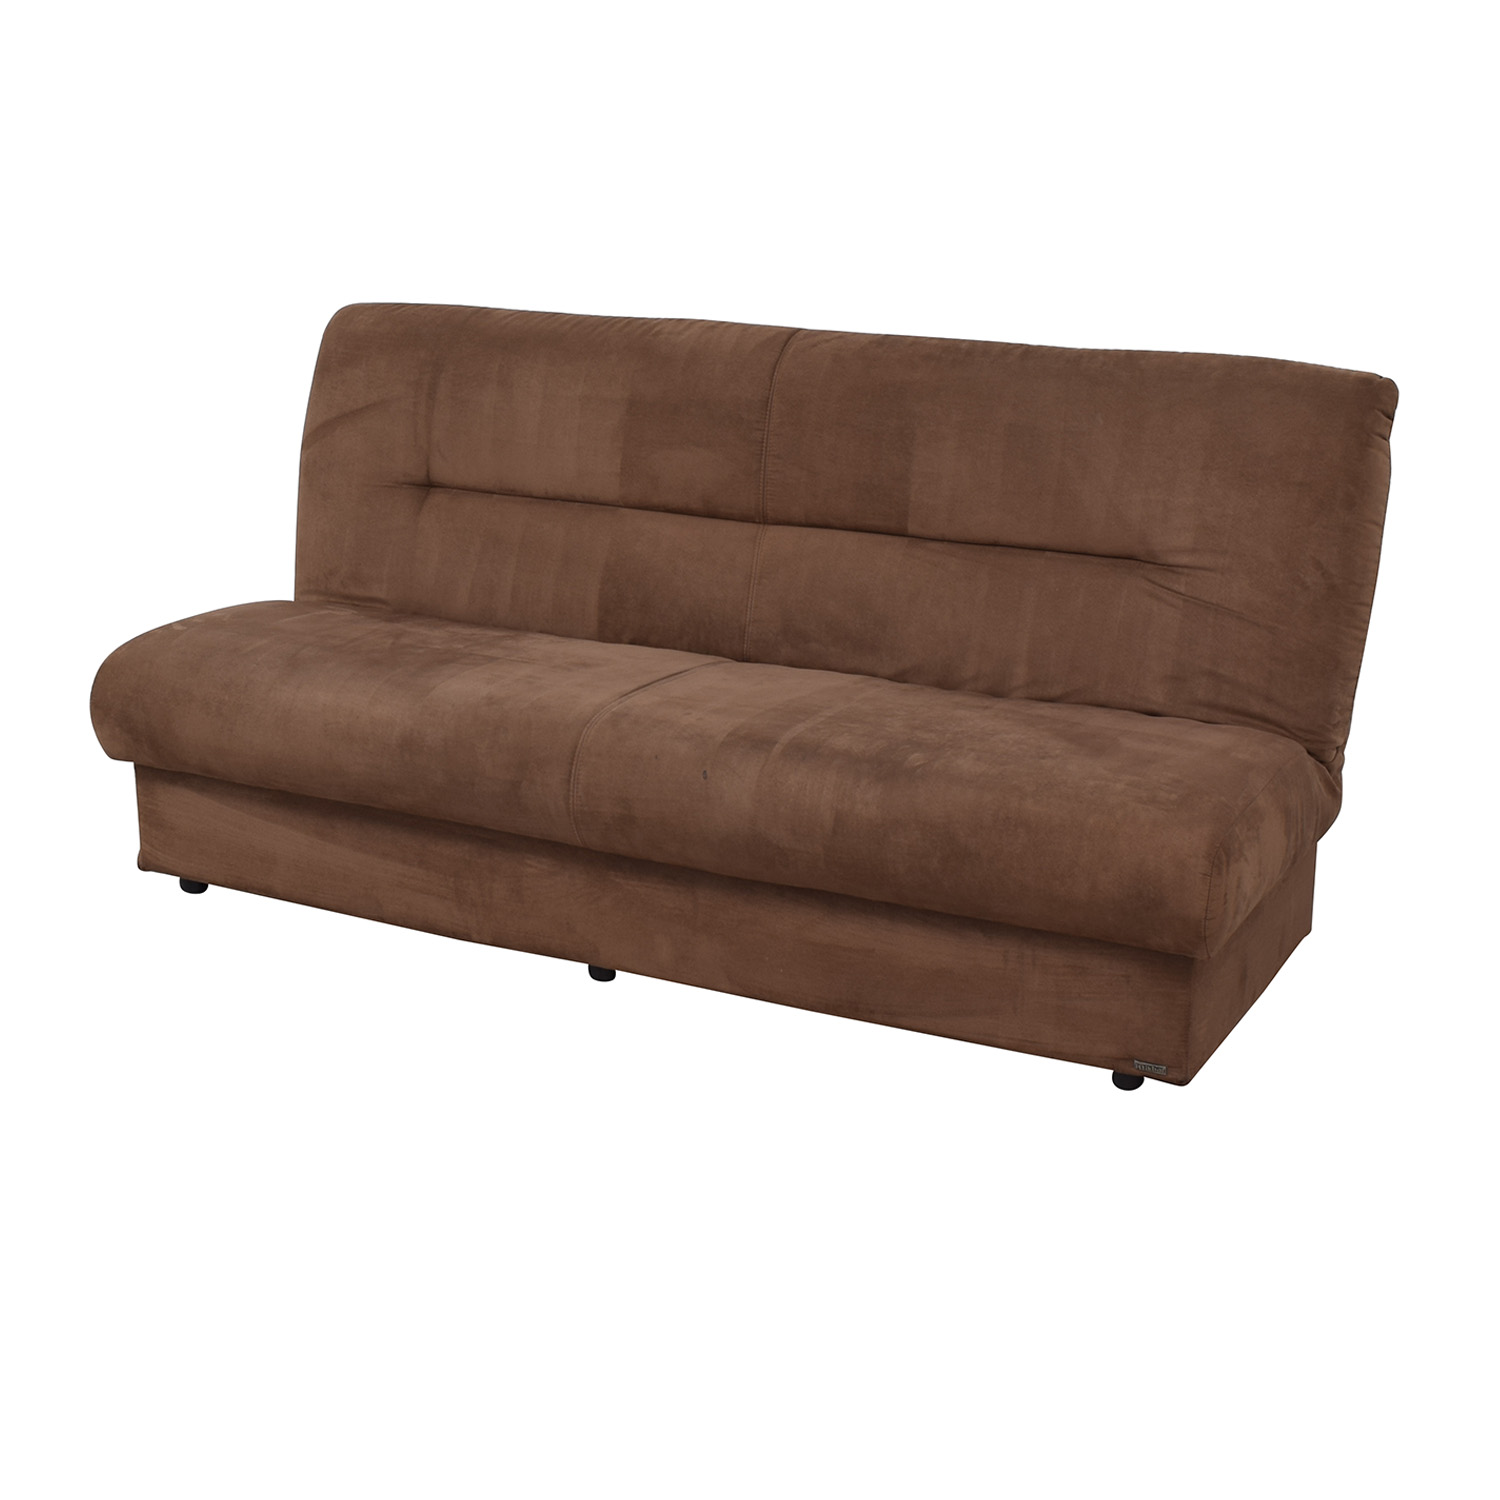 Istikbal Furniture Regata Diego Convertible Full Sofa Bed / Sofa Beds